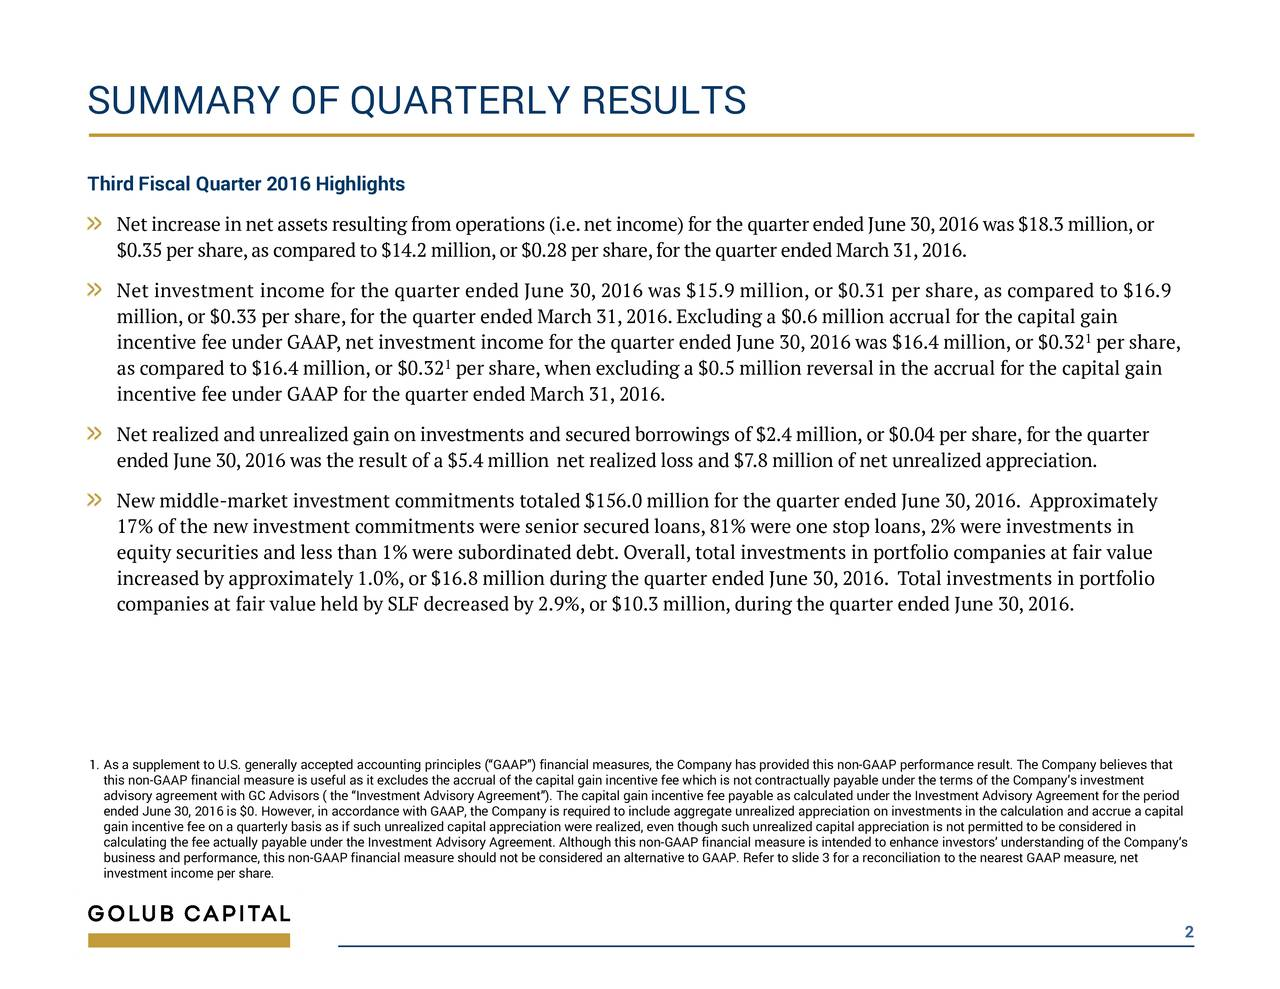 per share, 1 % were investments in n on investments in the calculation and accrue a capital n, or $0.04 per share, for the quarteron-GAAP performance result. The Company believes thatperiodtnys rsal in the accrual for the capital gain ly payable under the terms of the Companys investmentered in ter ended June 30,2016 was $18.3 million,or n for the quarter ended June 30, 2016. Approximately s, 81% were one stop loans, to GAAP. Refer to slide 3 for s $15.9 million, or $0.31 per share, as compared to $16.9tfolio companies at fair value for the quarter ended March 31,2016. 016.Excluding a $0.6 million accrual for the capital gain quarter ended June 30, 2016 was $16.4 million, or $0.32 , or $10.3 million, during the quarter ended June 30,2016. t). The capital gain incentive fee payable as calculate be considered an alternative million during the qu(GAAP) ry Agreement. Although this non-GAAP financial measure is intend operations (i.e.net income) for the quarng a $0.5 million reve ccrual of the capital gain incentive fee which is not contractual 1 estments and secured borrowings of $2.4 millioapital appreciation were realized, even though such unrealized c $14.2 million,or $0.28 per share, Investment Advisory Agreemen Net increaetiivestt esetnceended June 30, 2016 was the result oftanvs-AaPrfaenilieGuresusr(lae it excludes the ar the Investment Adviso SUM ThirA FscaYl QOarFer 01 6 HighlightsERLY RESULTS 1. As a supplement to U.S. generally accepted accounting principles